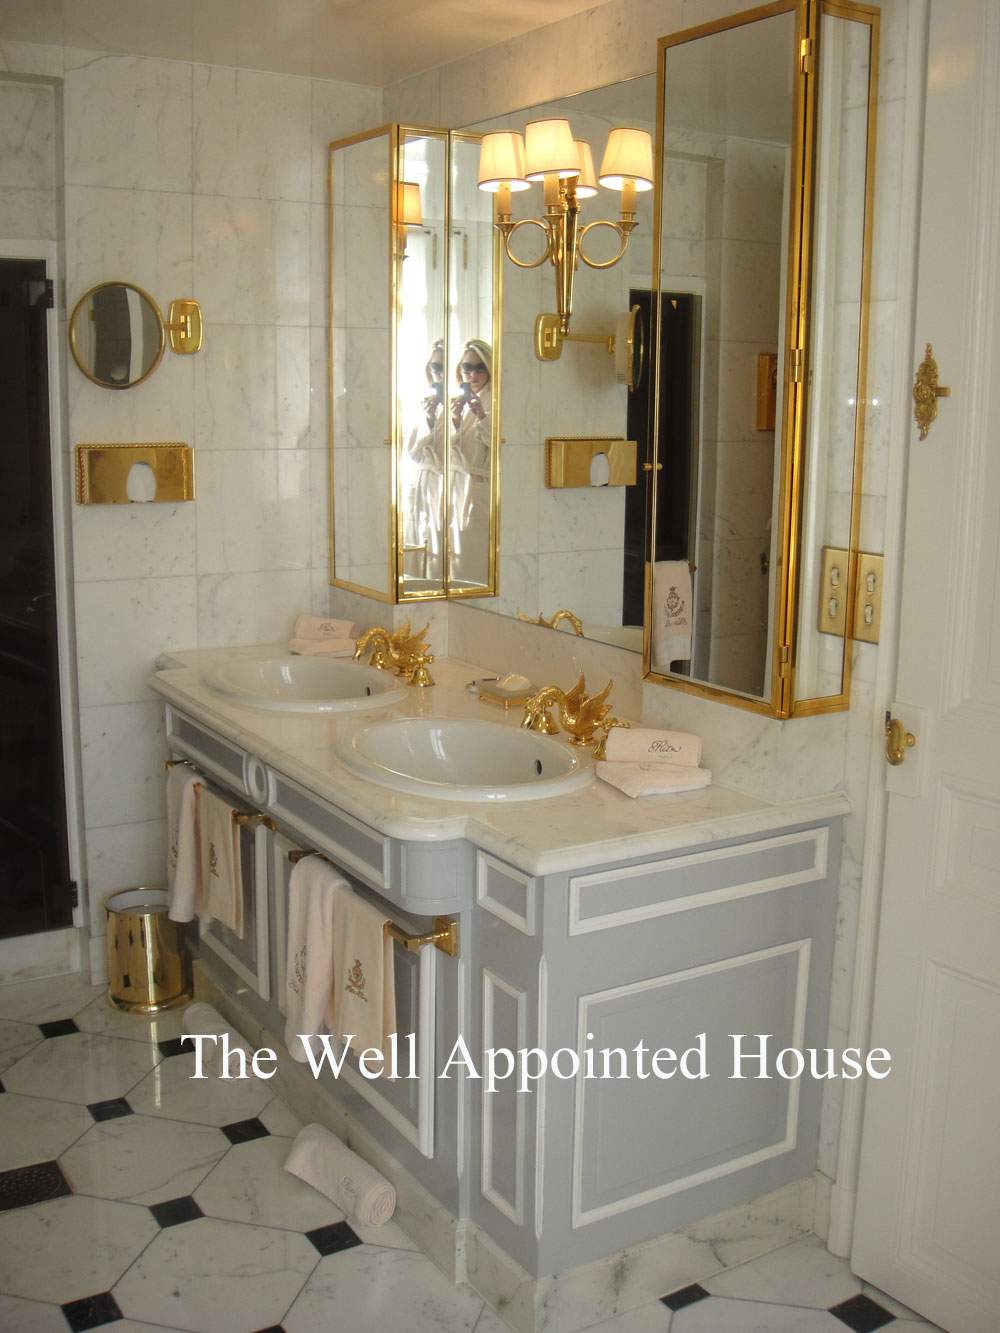 Things We Love: Ritz Paris Bathrooms | The Well Appointed House Blog:  Living The Well Appointed Life